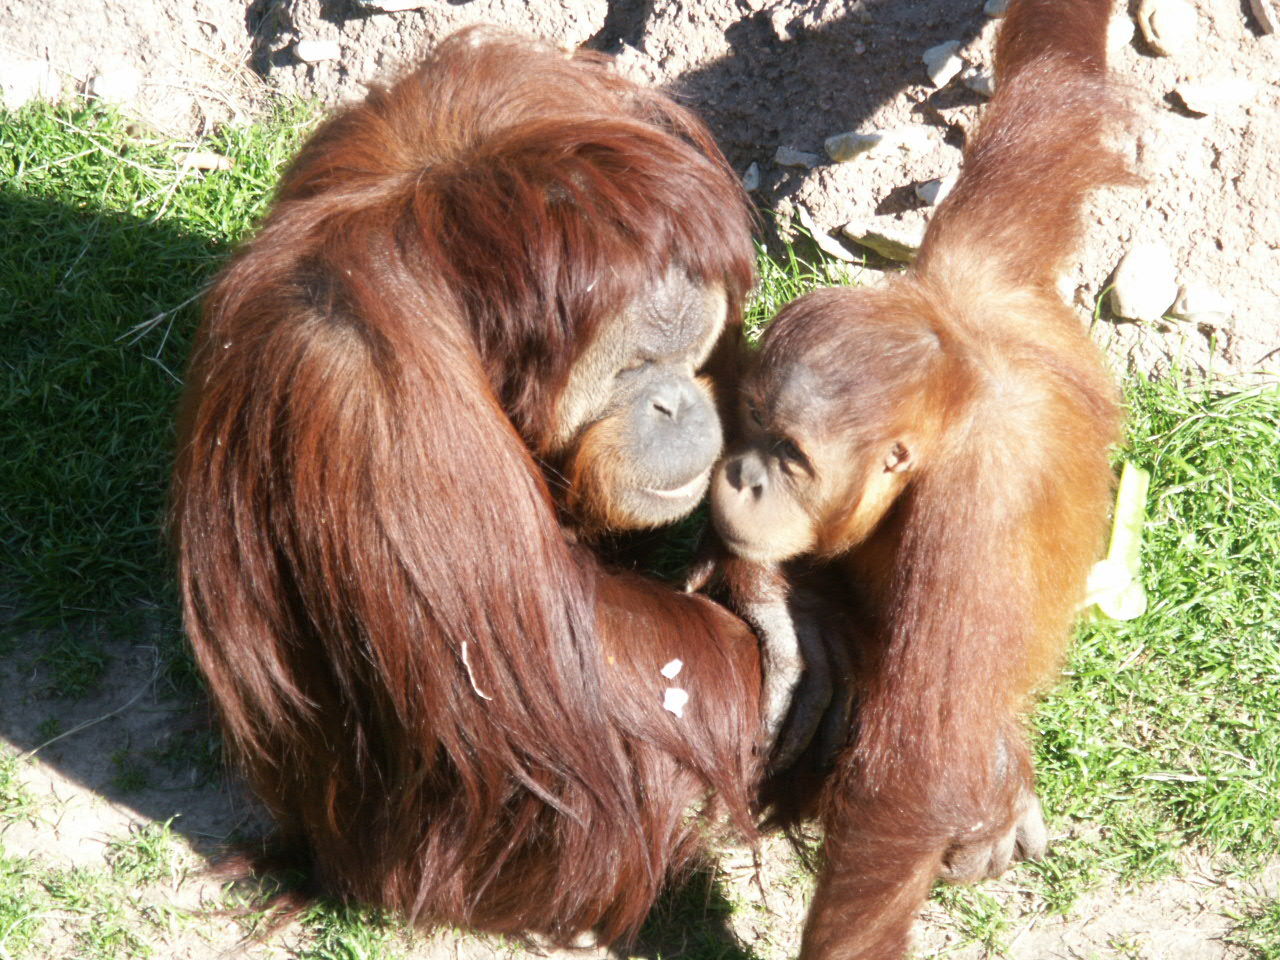 Orangutan has sex with woman